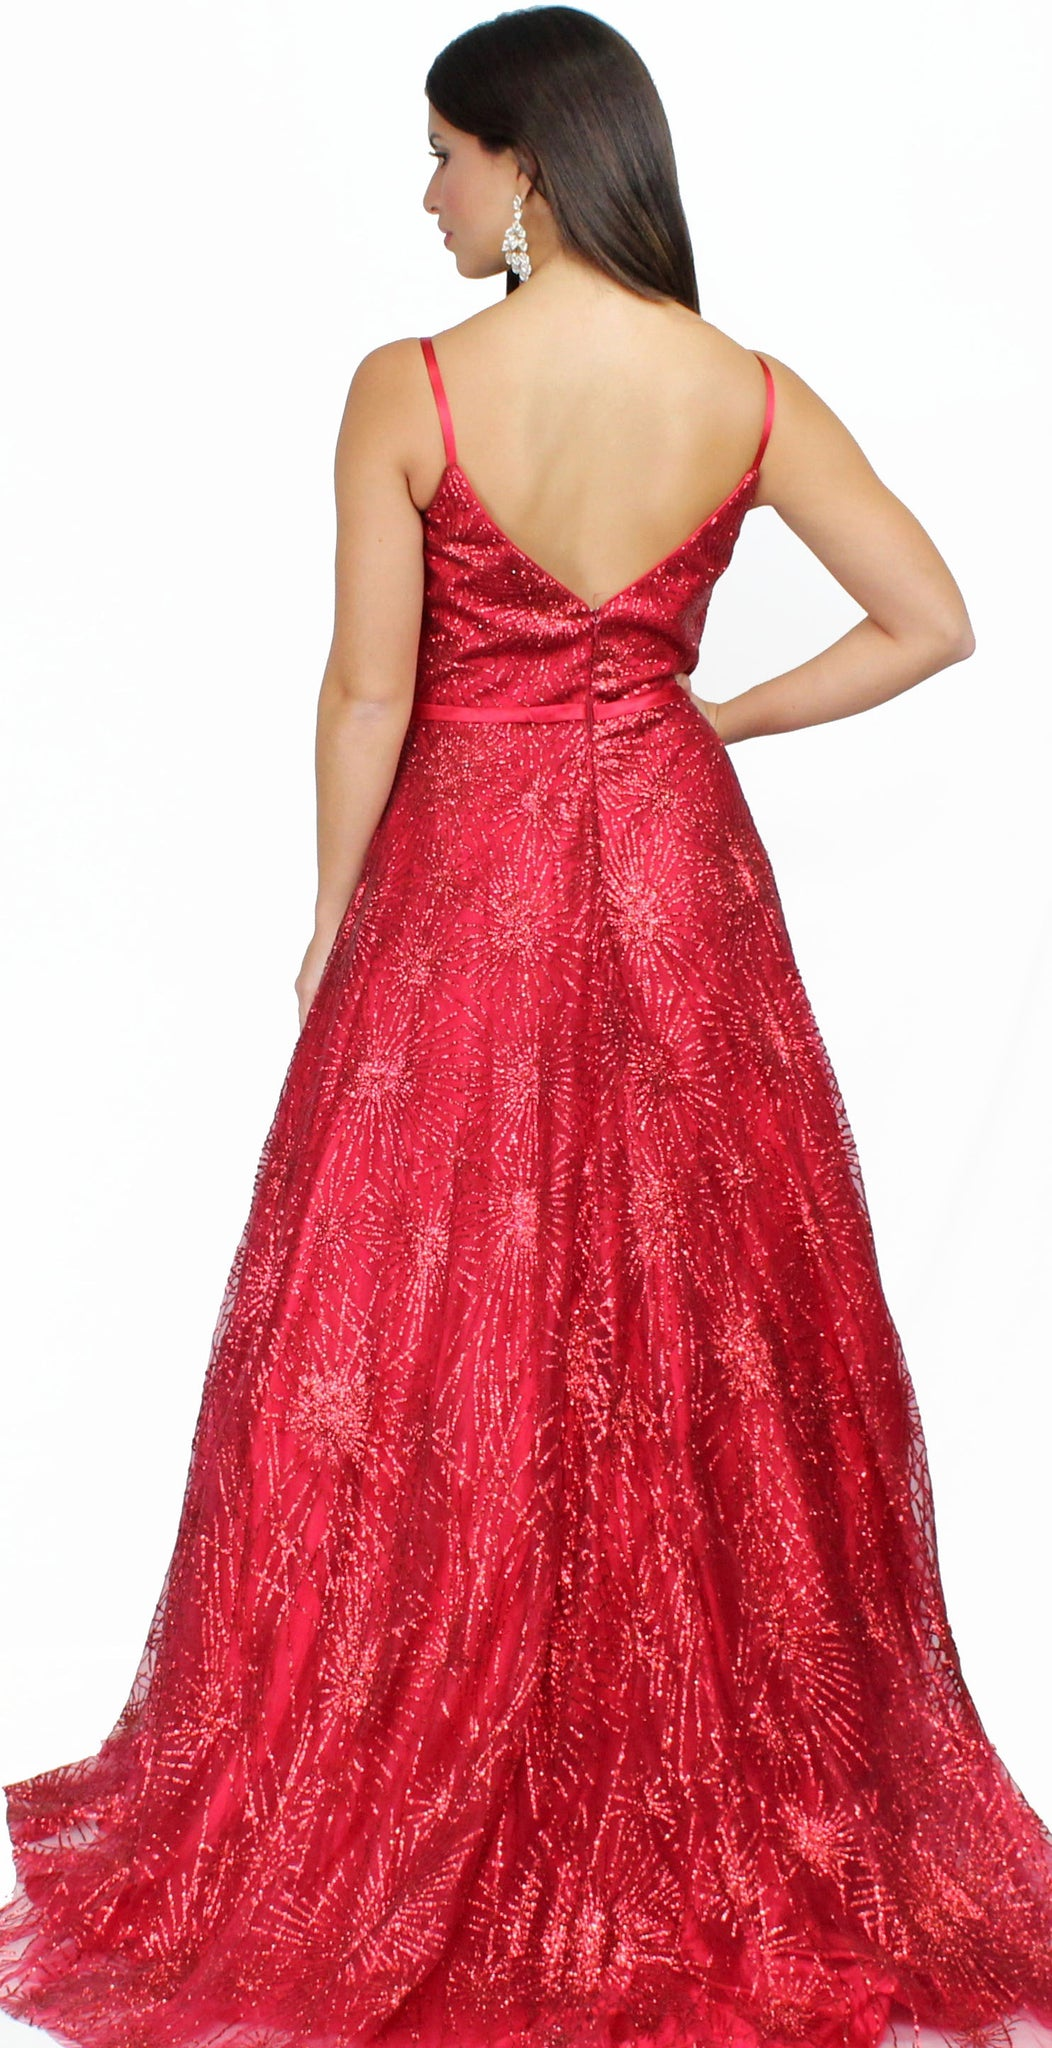 Lavish Lover Red Glitter Ball Gown